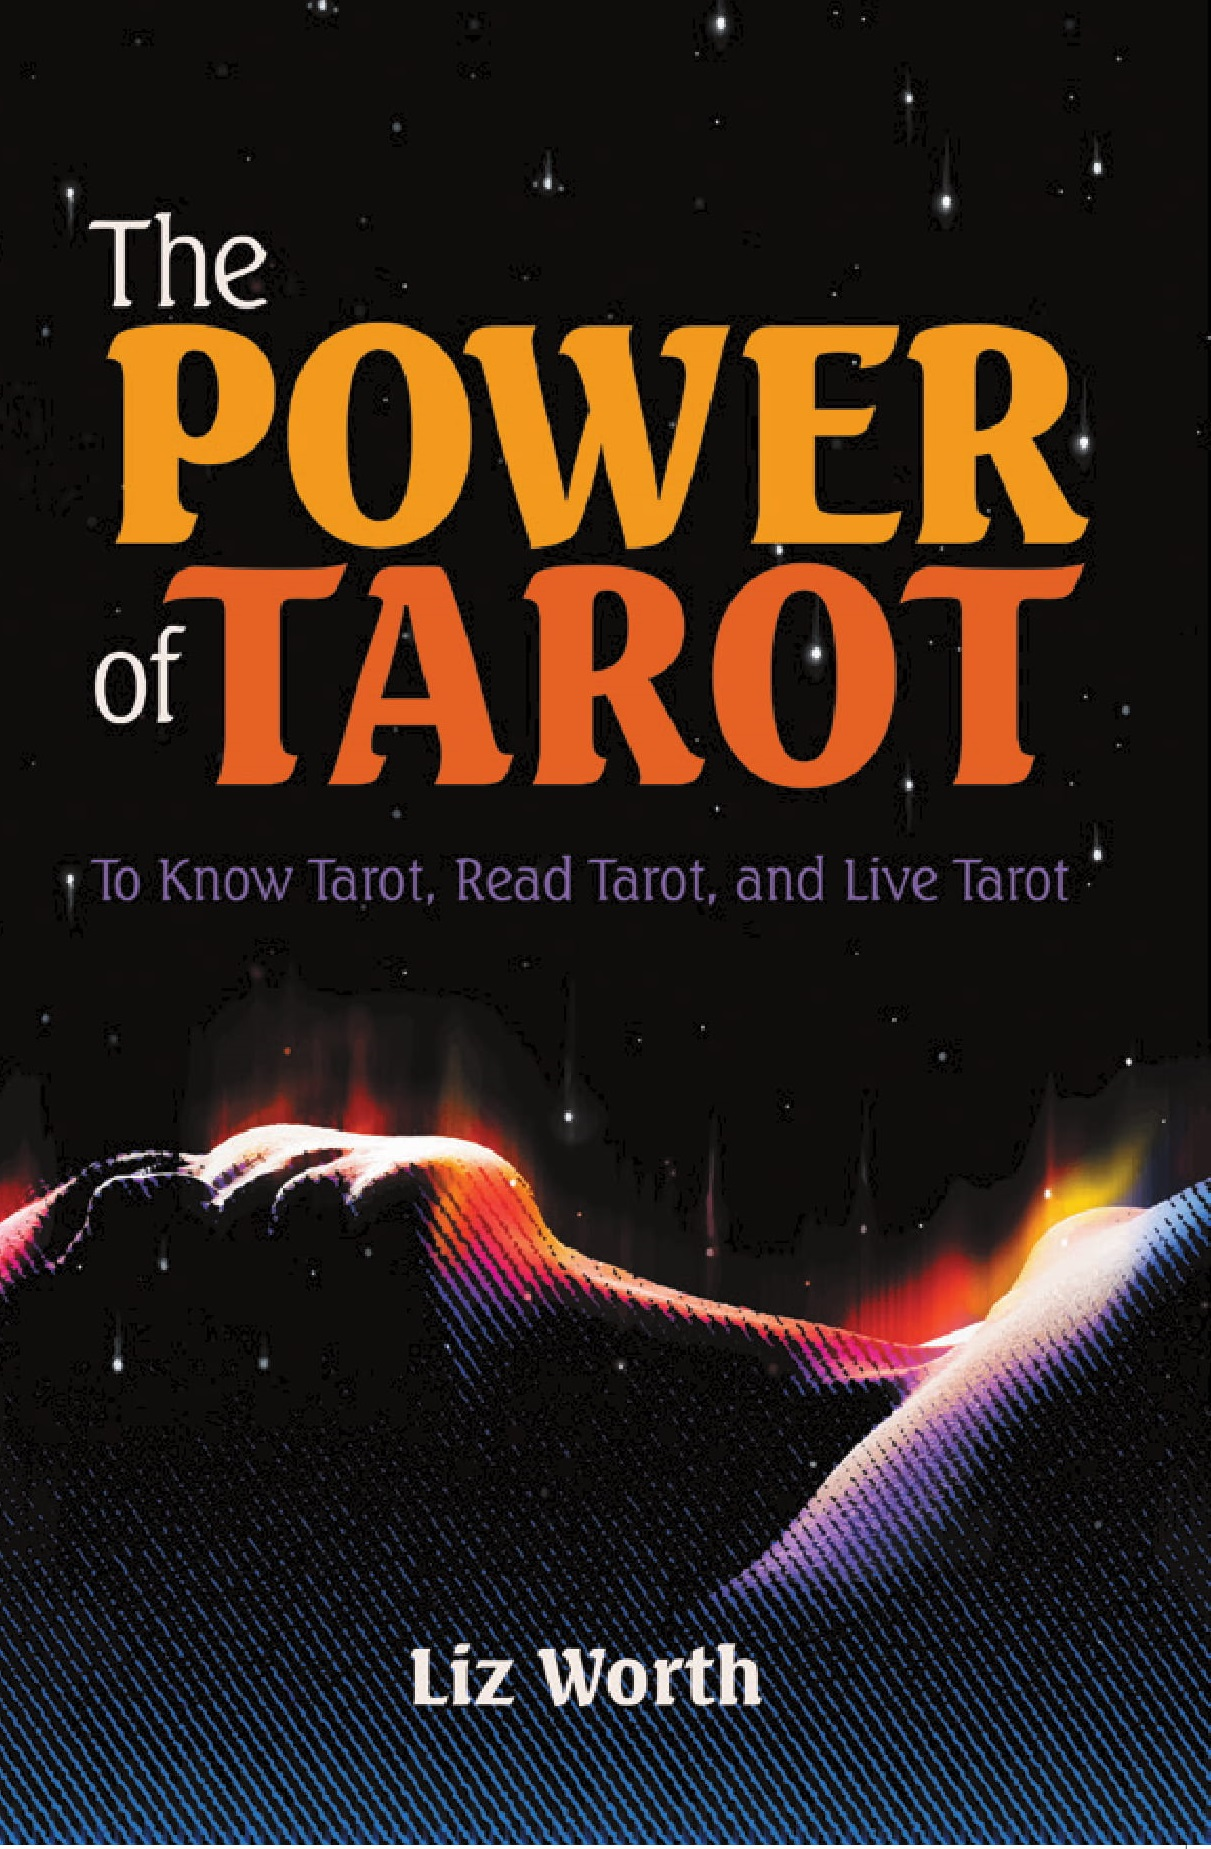 The Power of Tarot by Liz Worth | Book Review